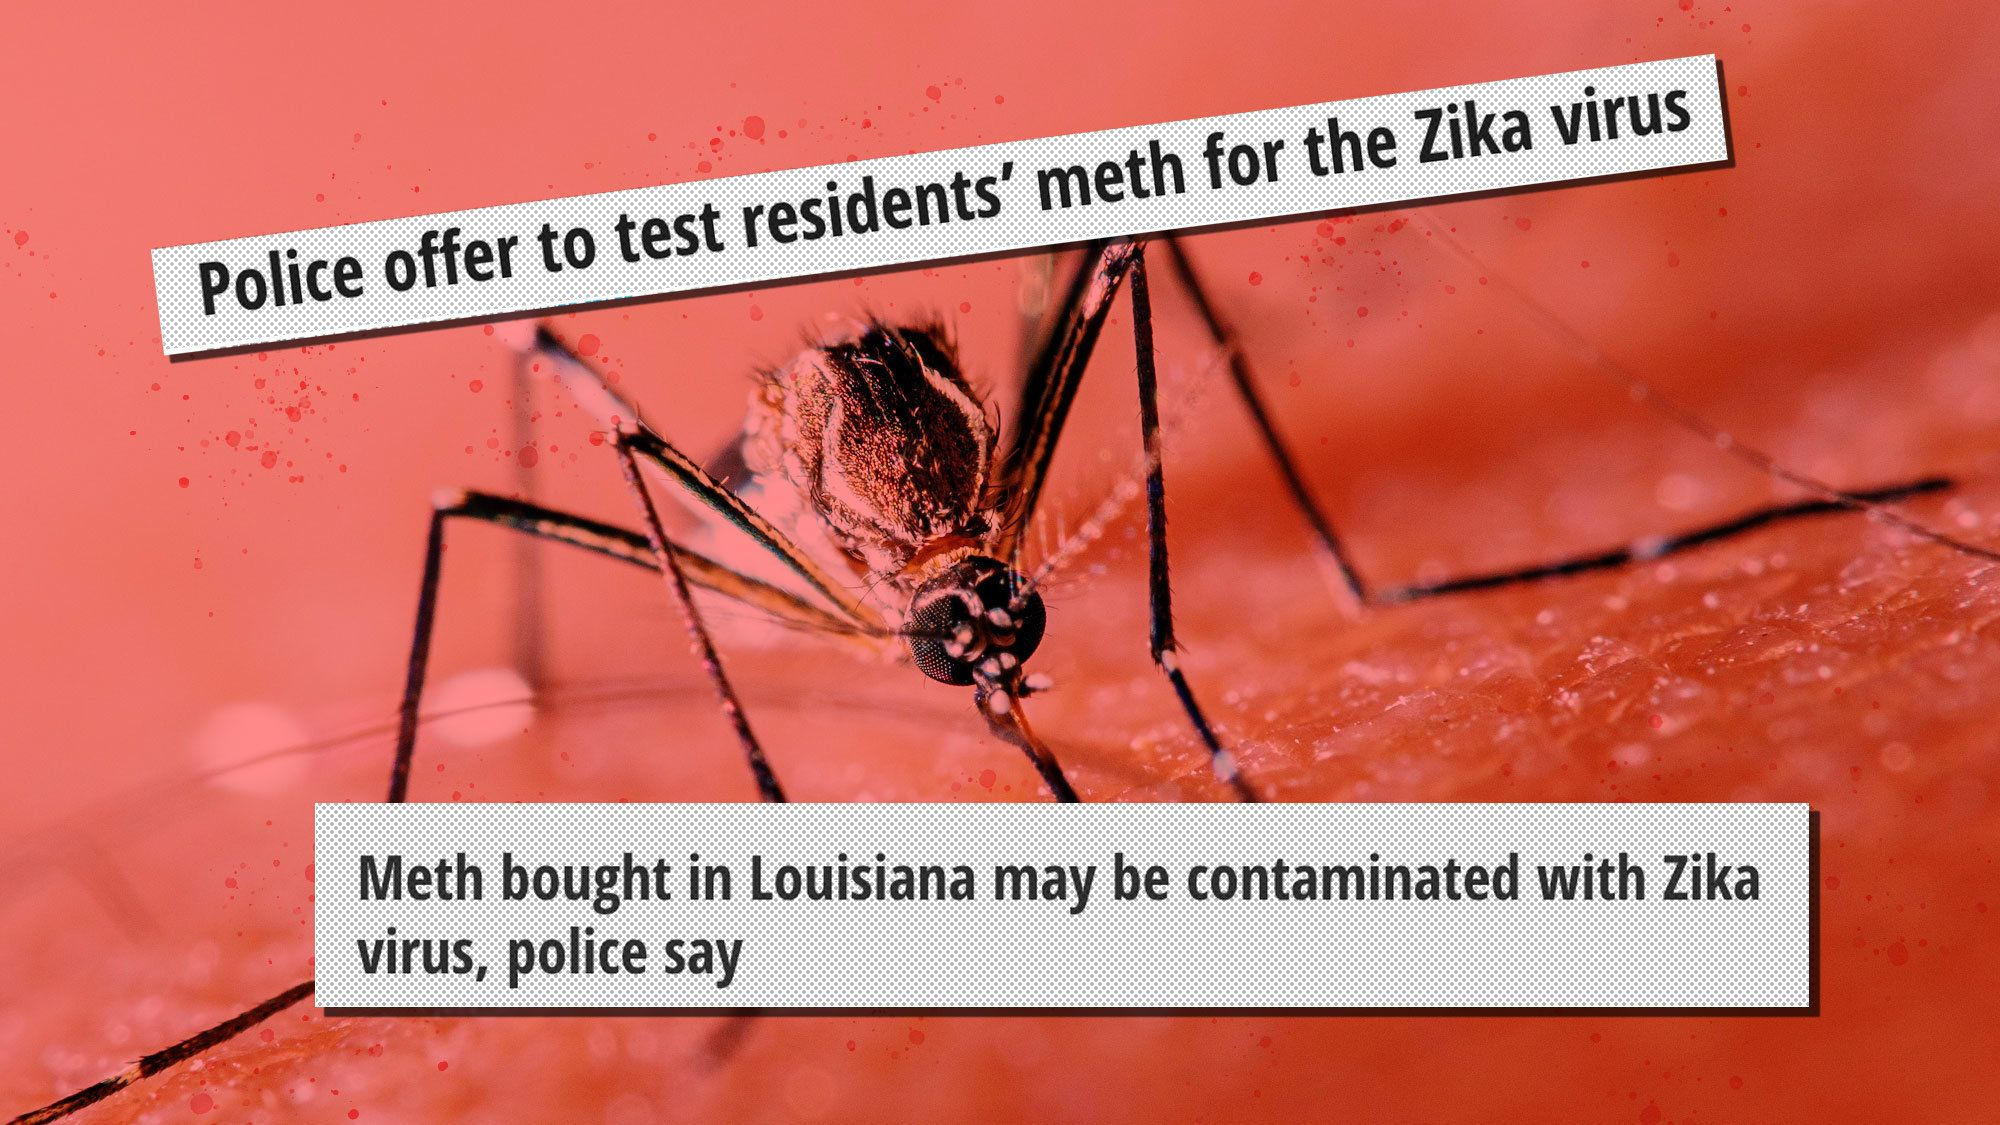 Police offer free service to test meth for Zika